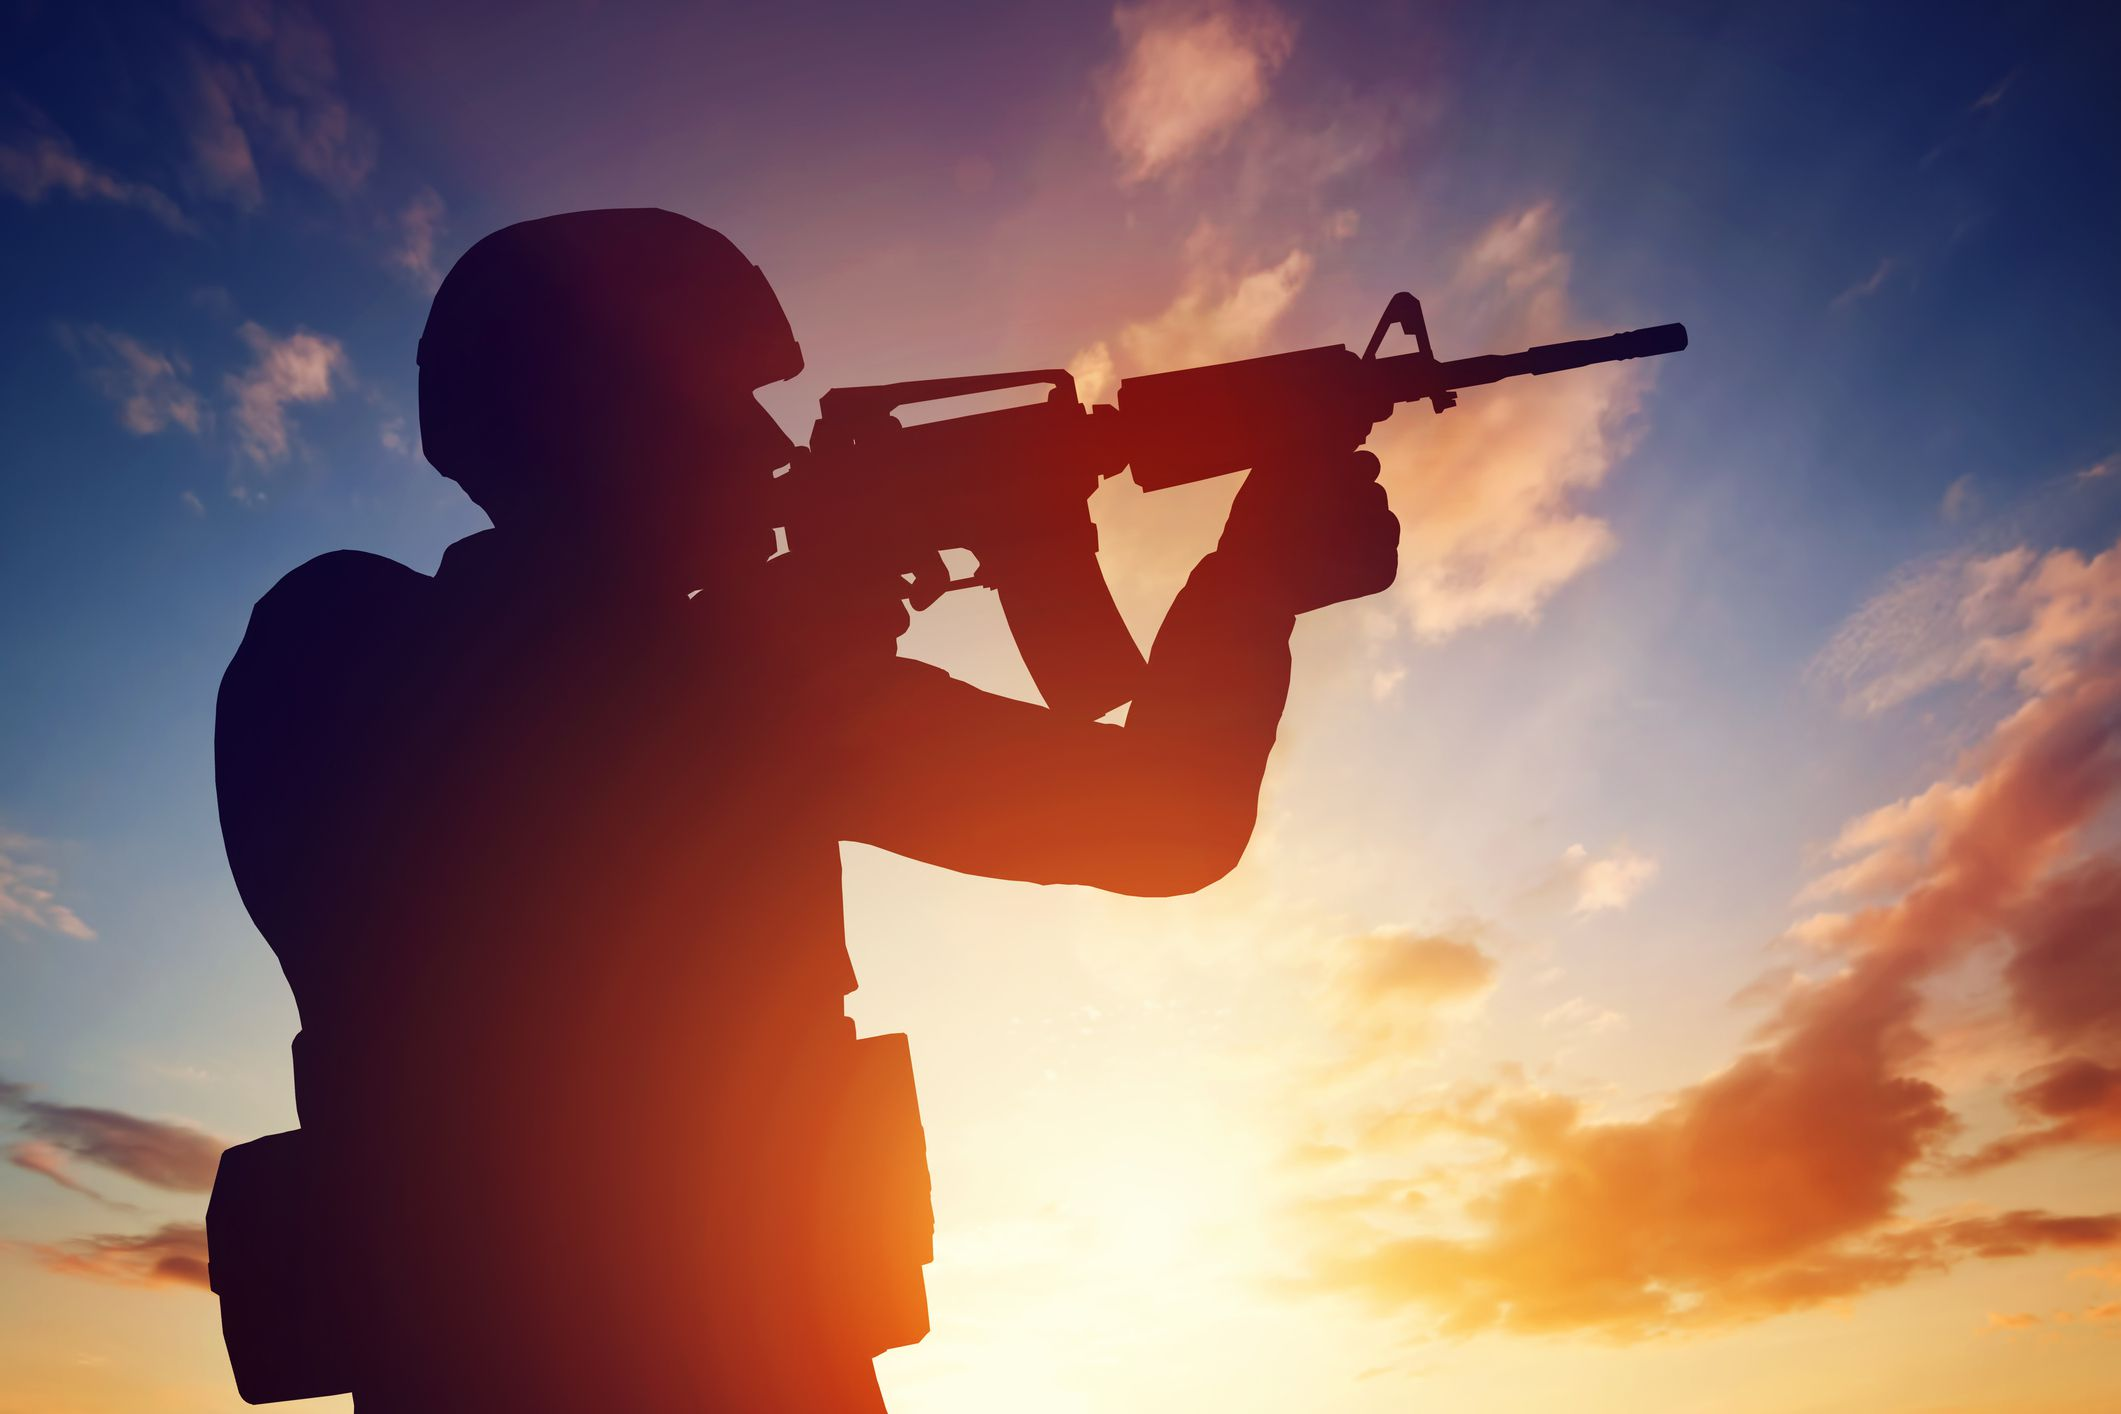 Soldier firing rifle at sunset